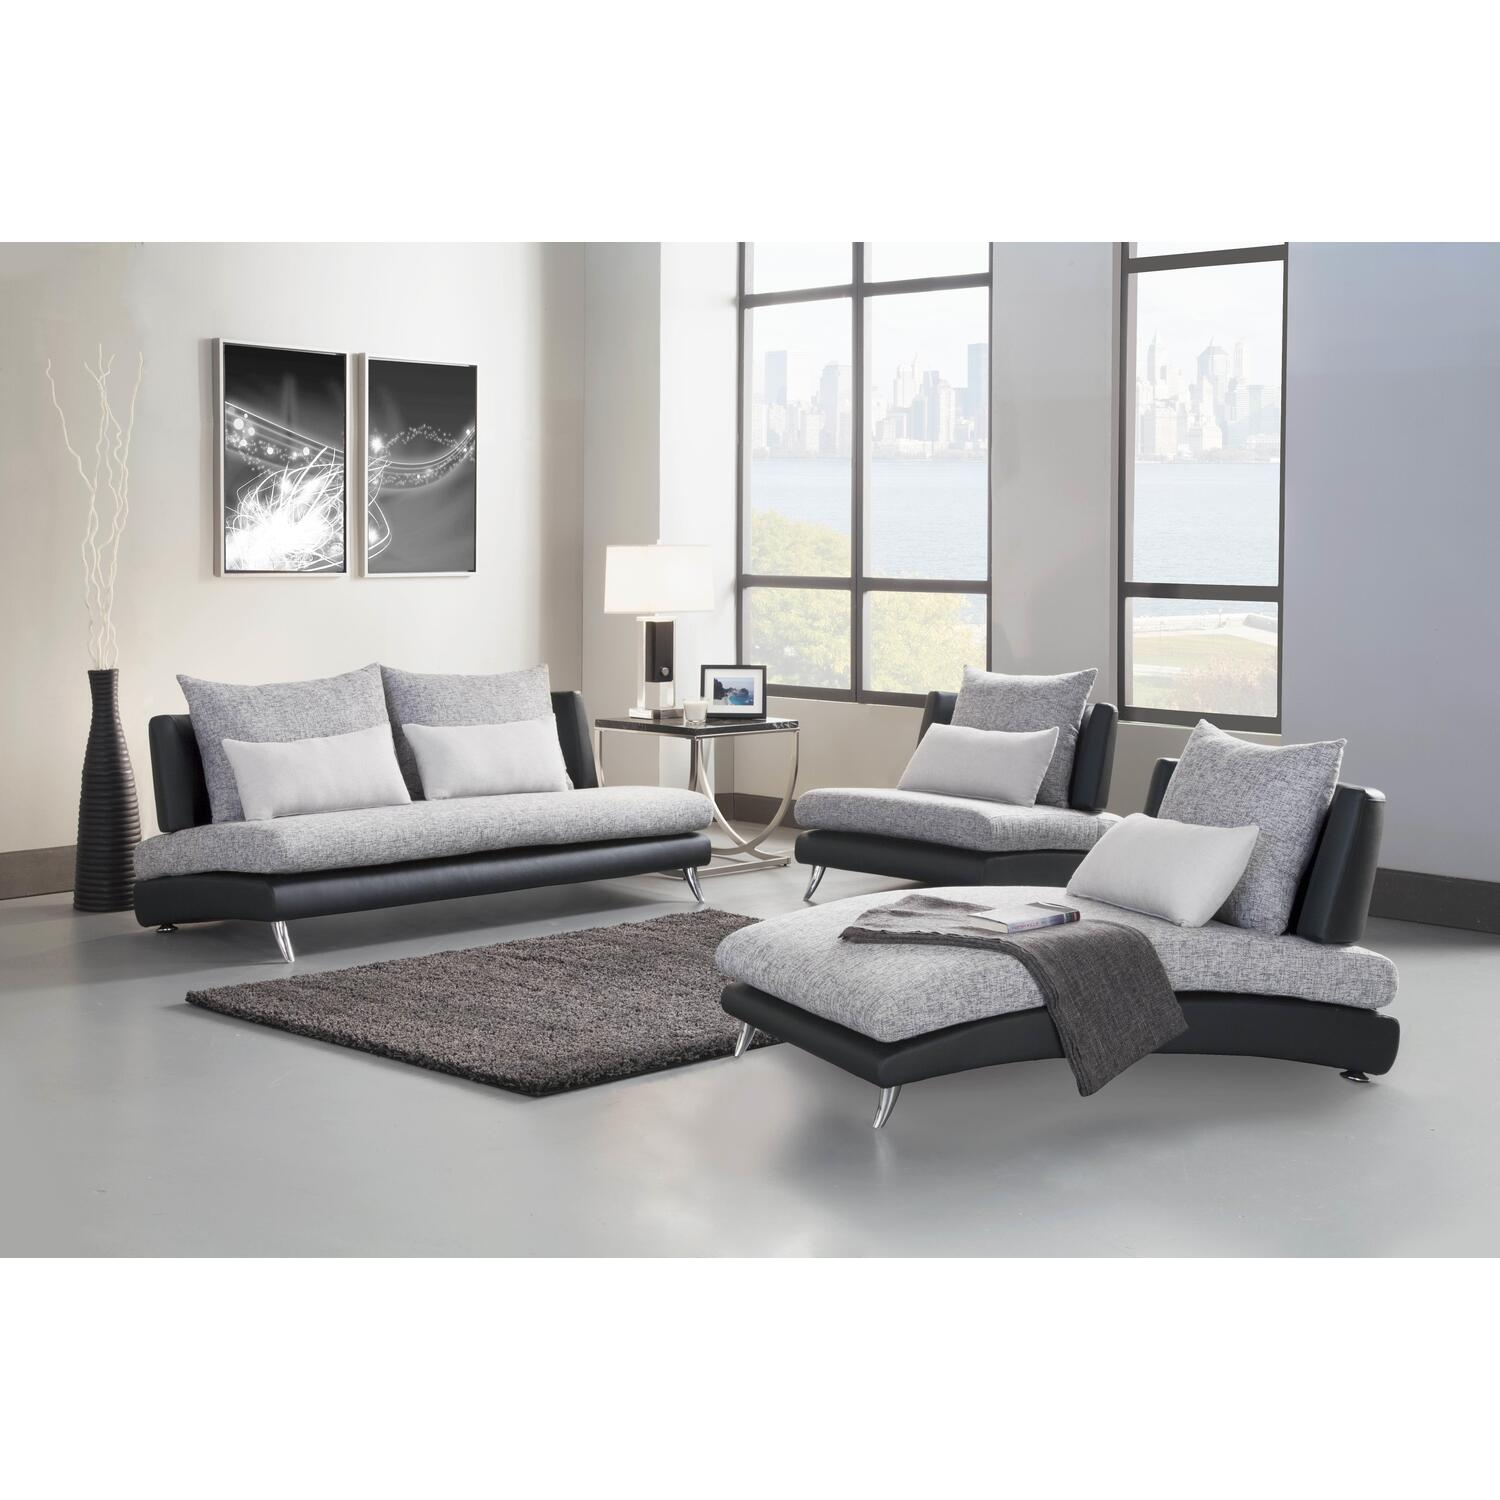 Homelegance renton living room set by oj commerce 1 444 for Modern living room sets